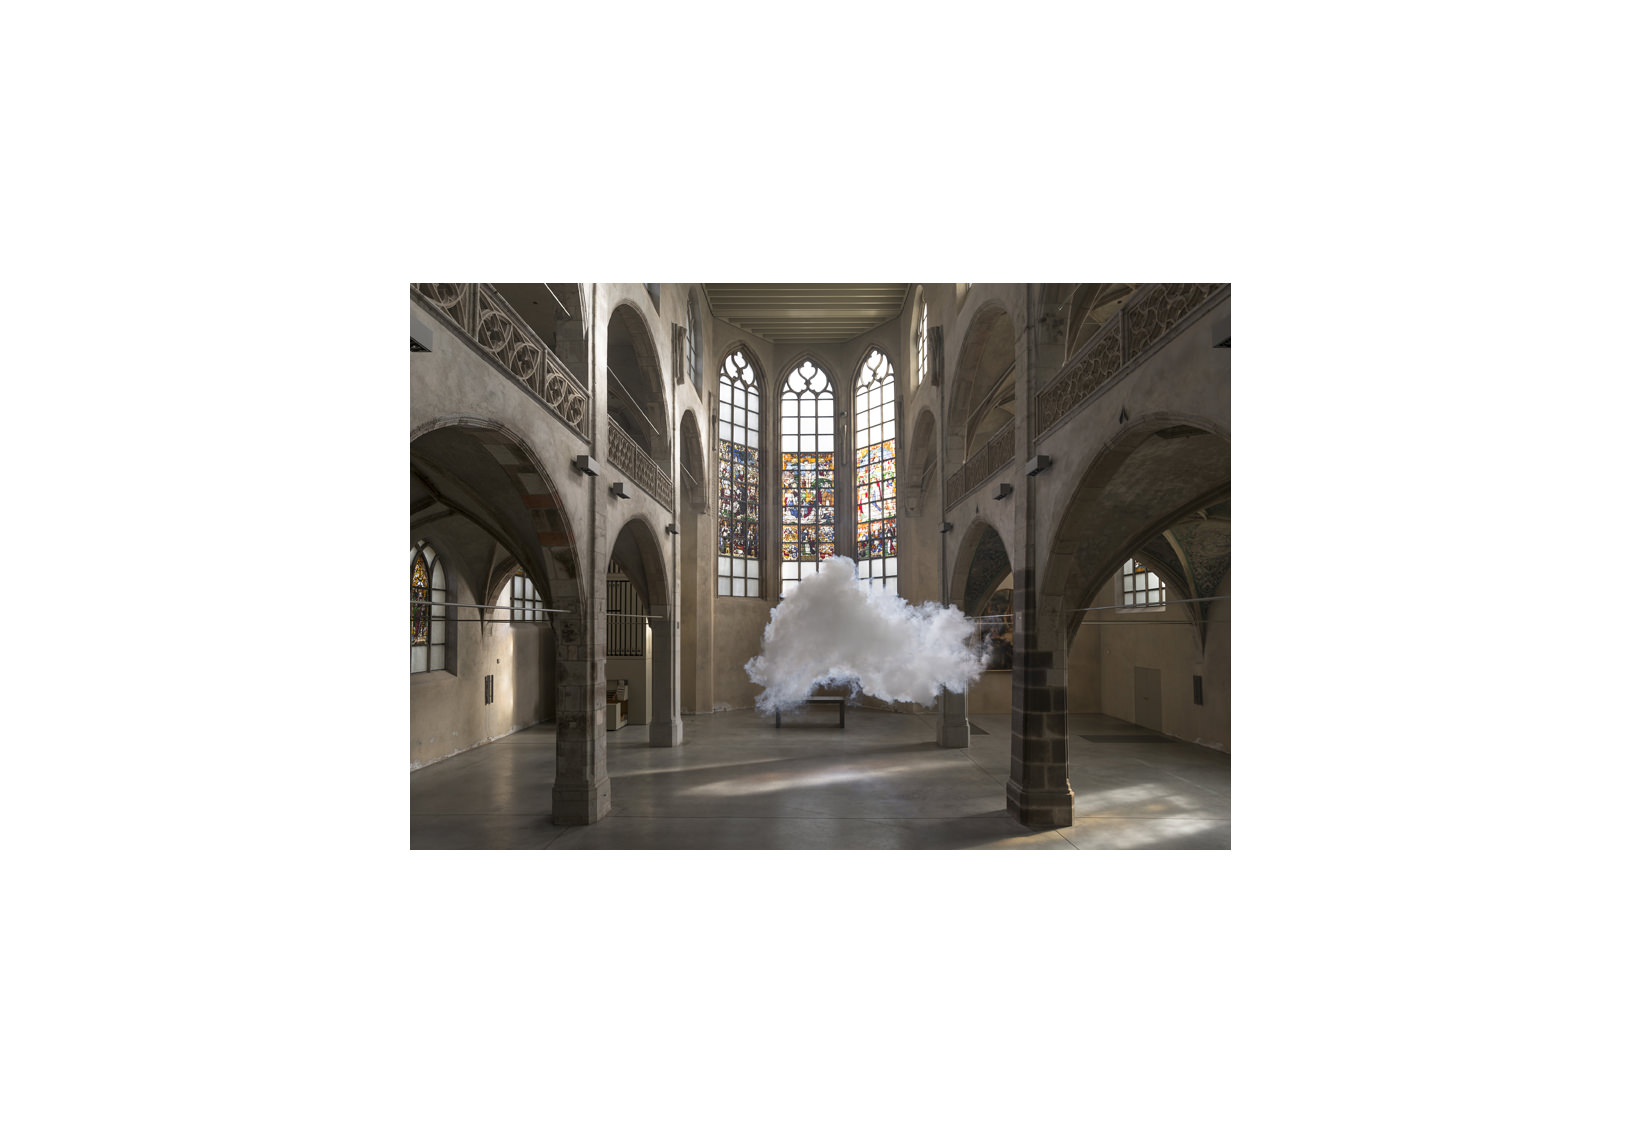 Berndnaut Smilde, Nimbus Sankt Peter, 2014, digital c-type print on aluminium, 125 x 181 cm, 75 x 109 cm, ed. of 6+2 ap